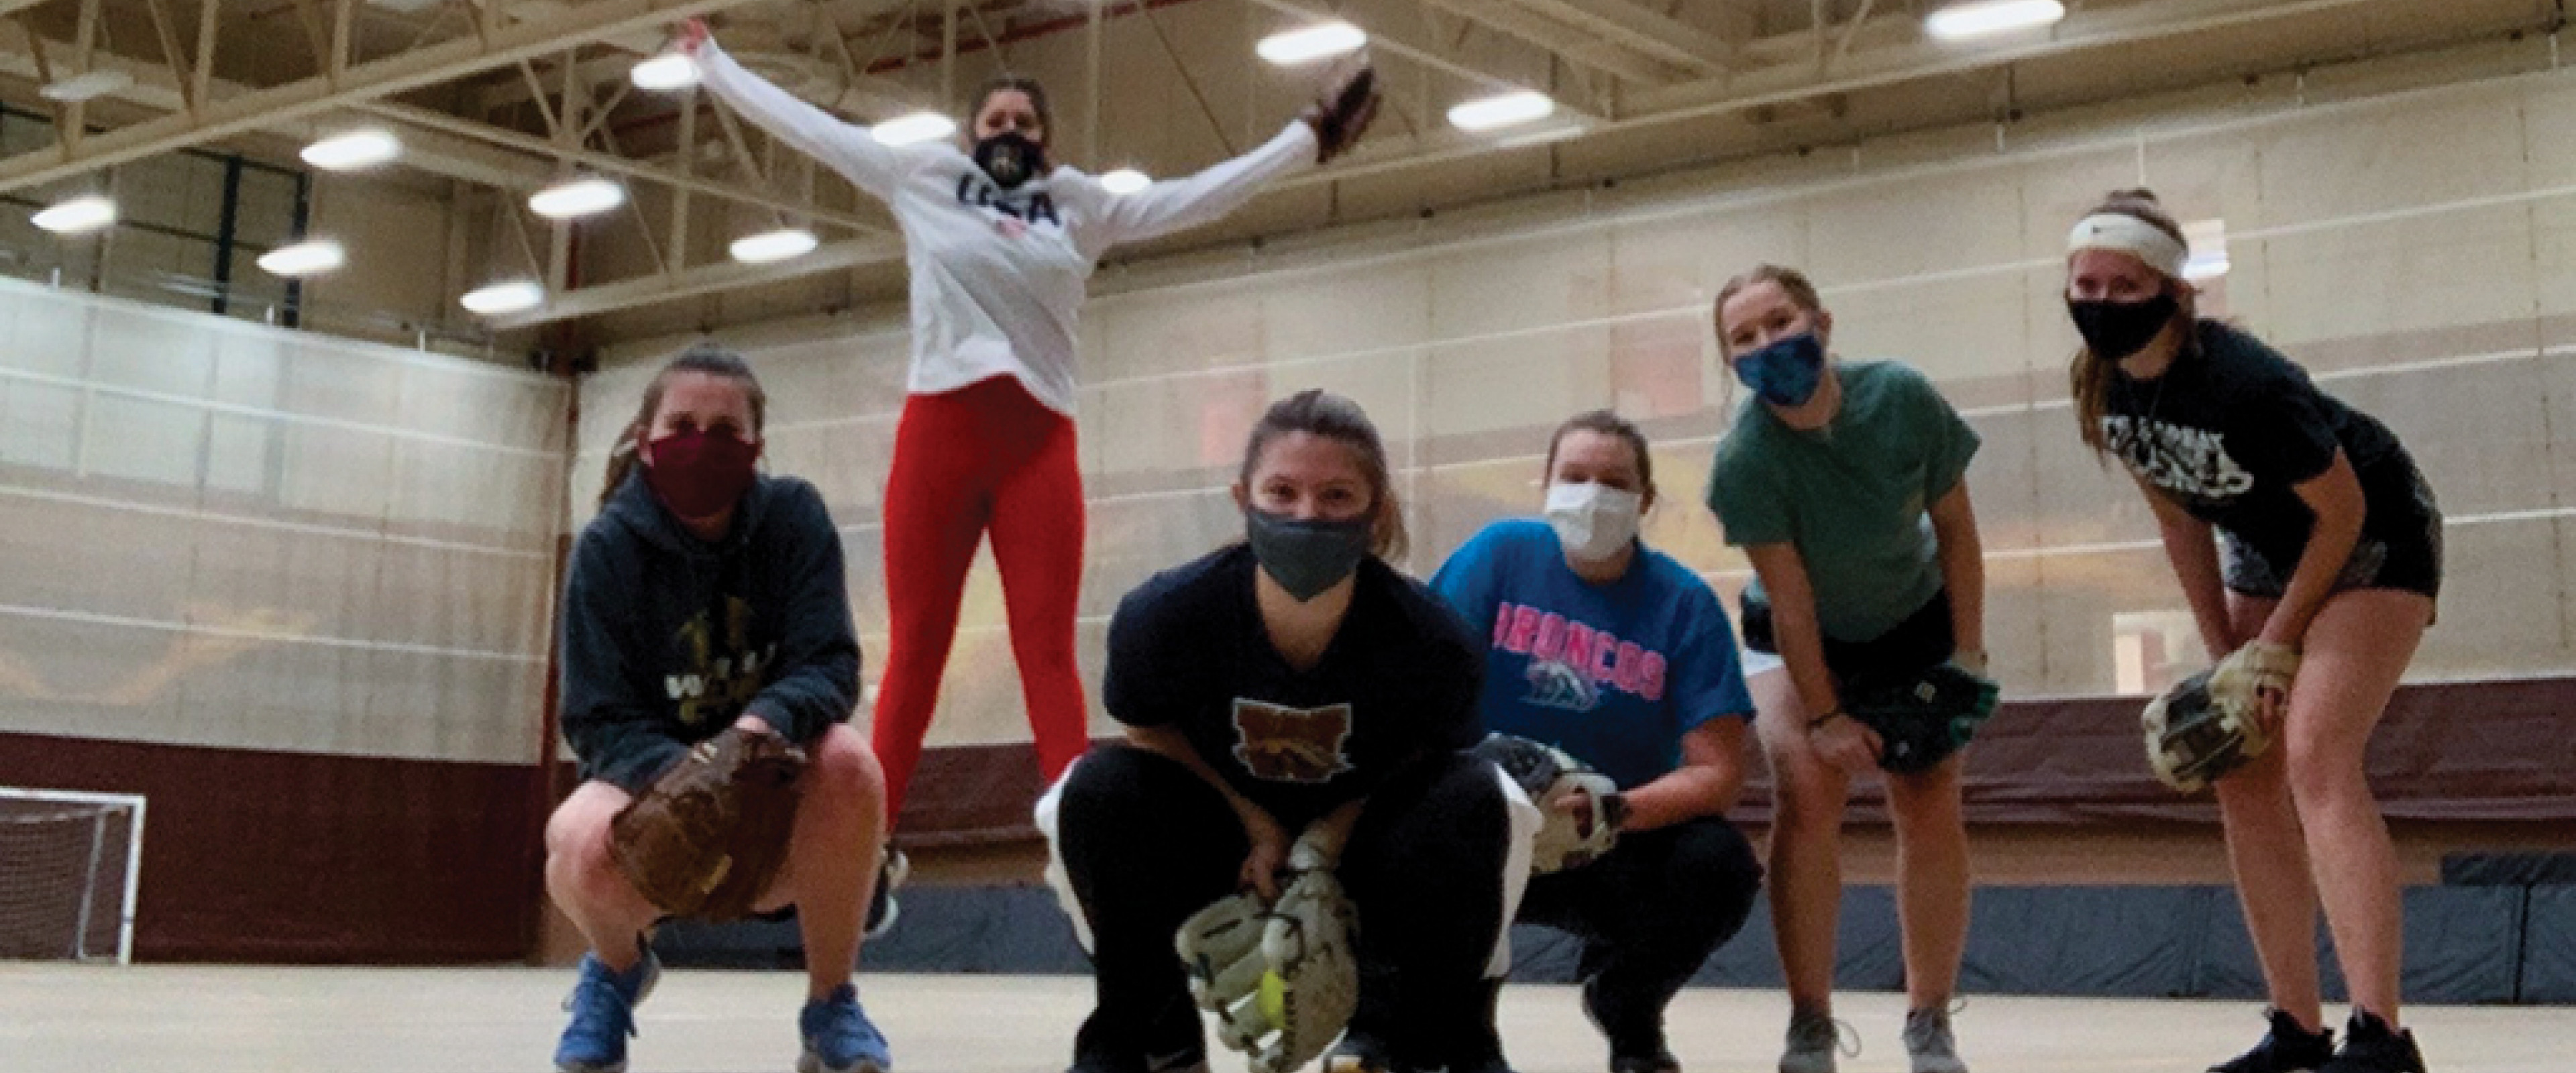 Softball team with masks practicing